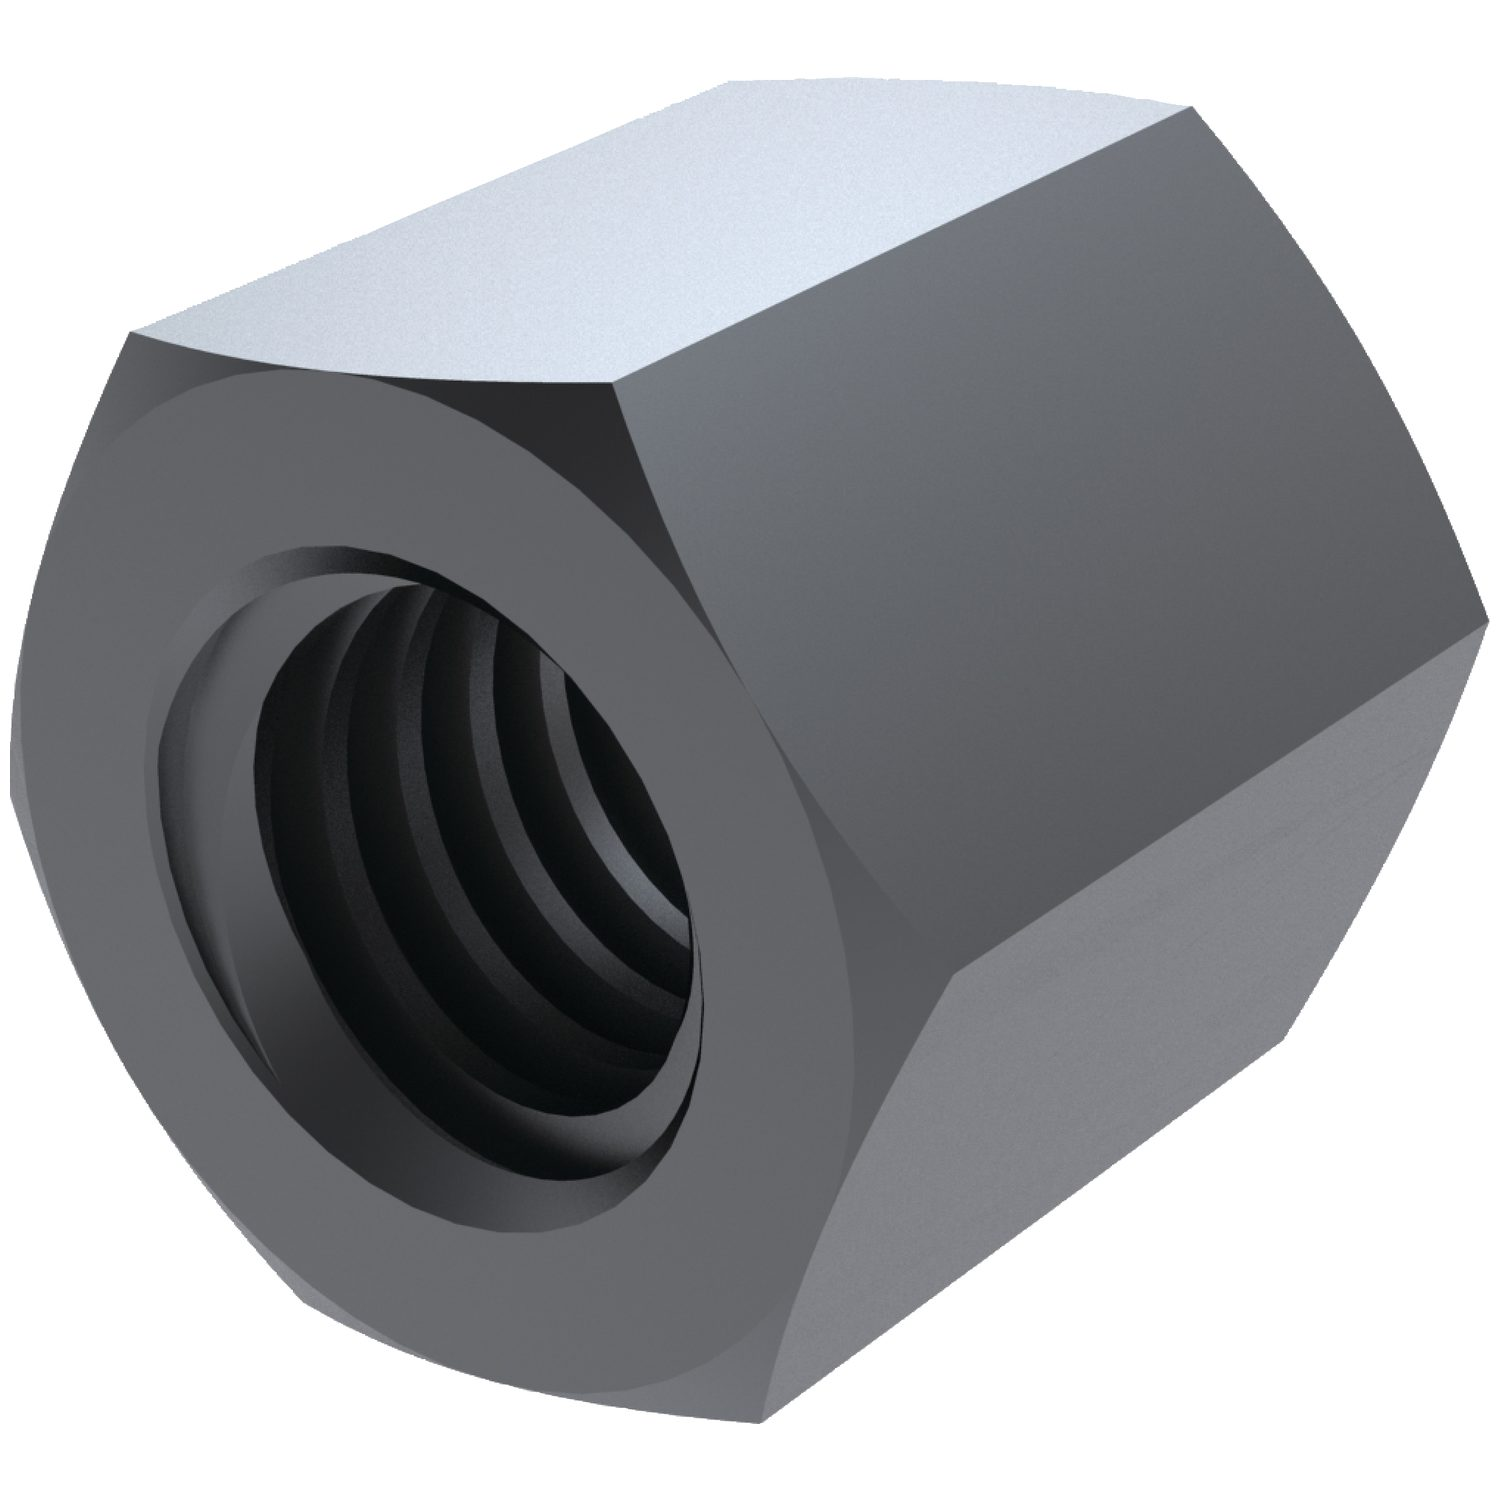 L1338 - Hexagon Steel Nuts